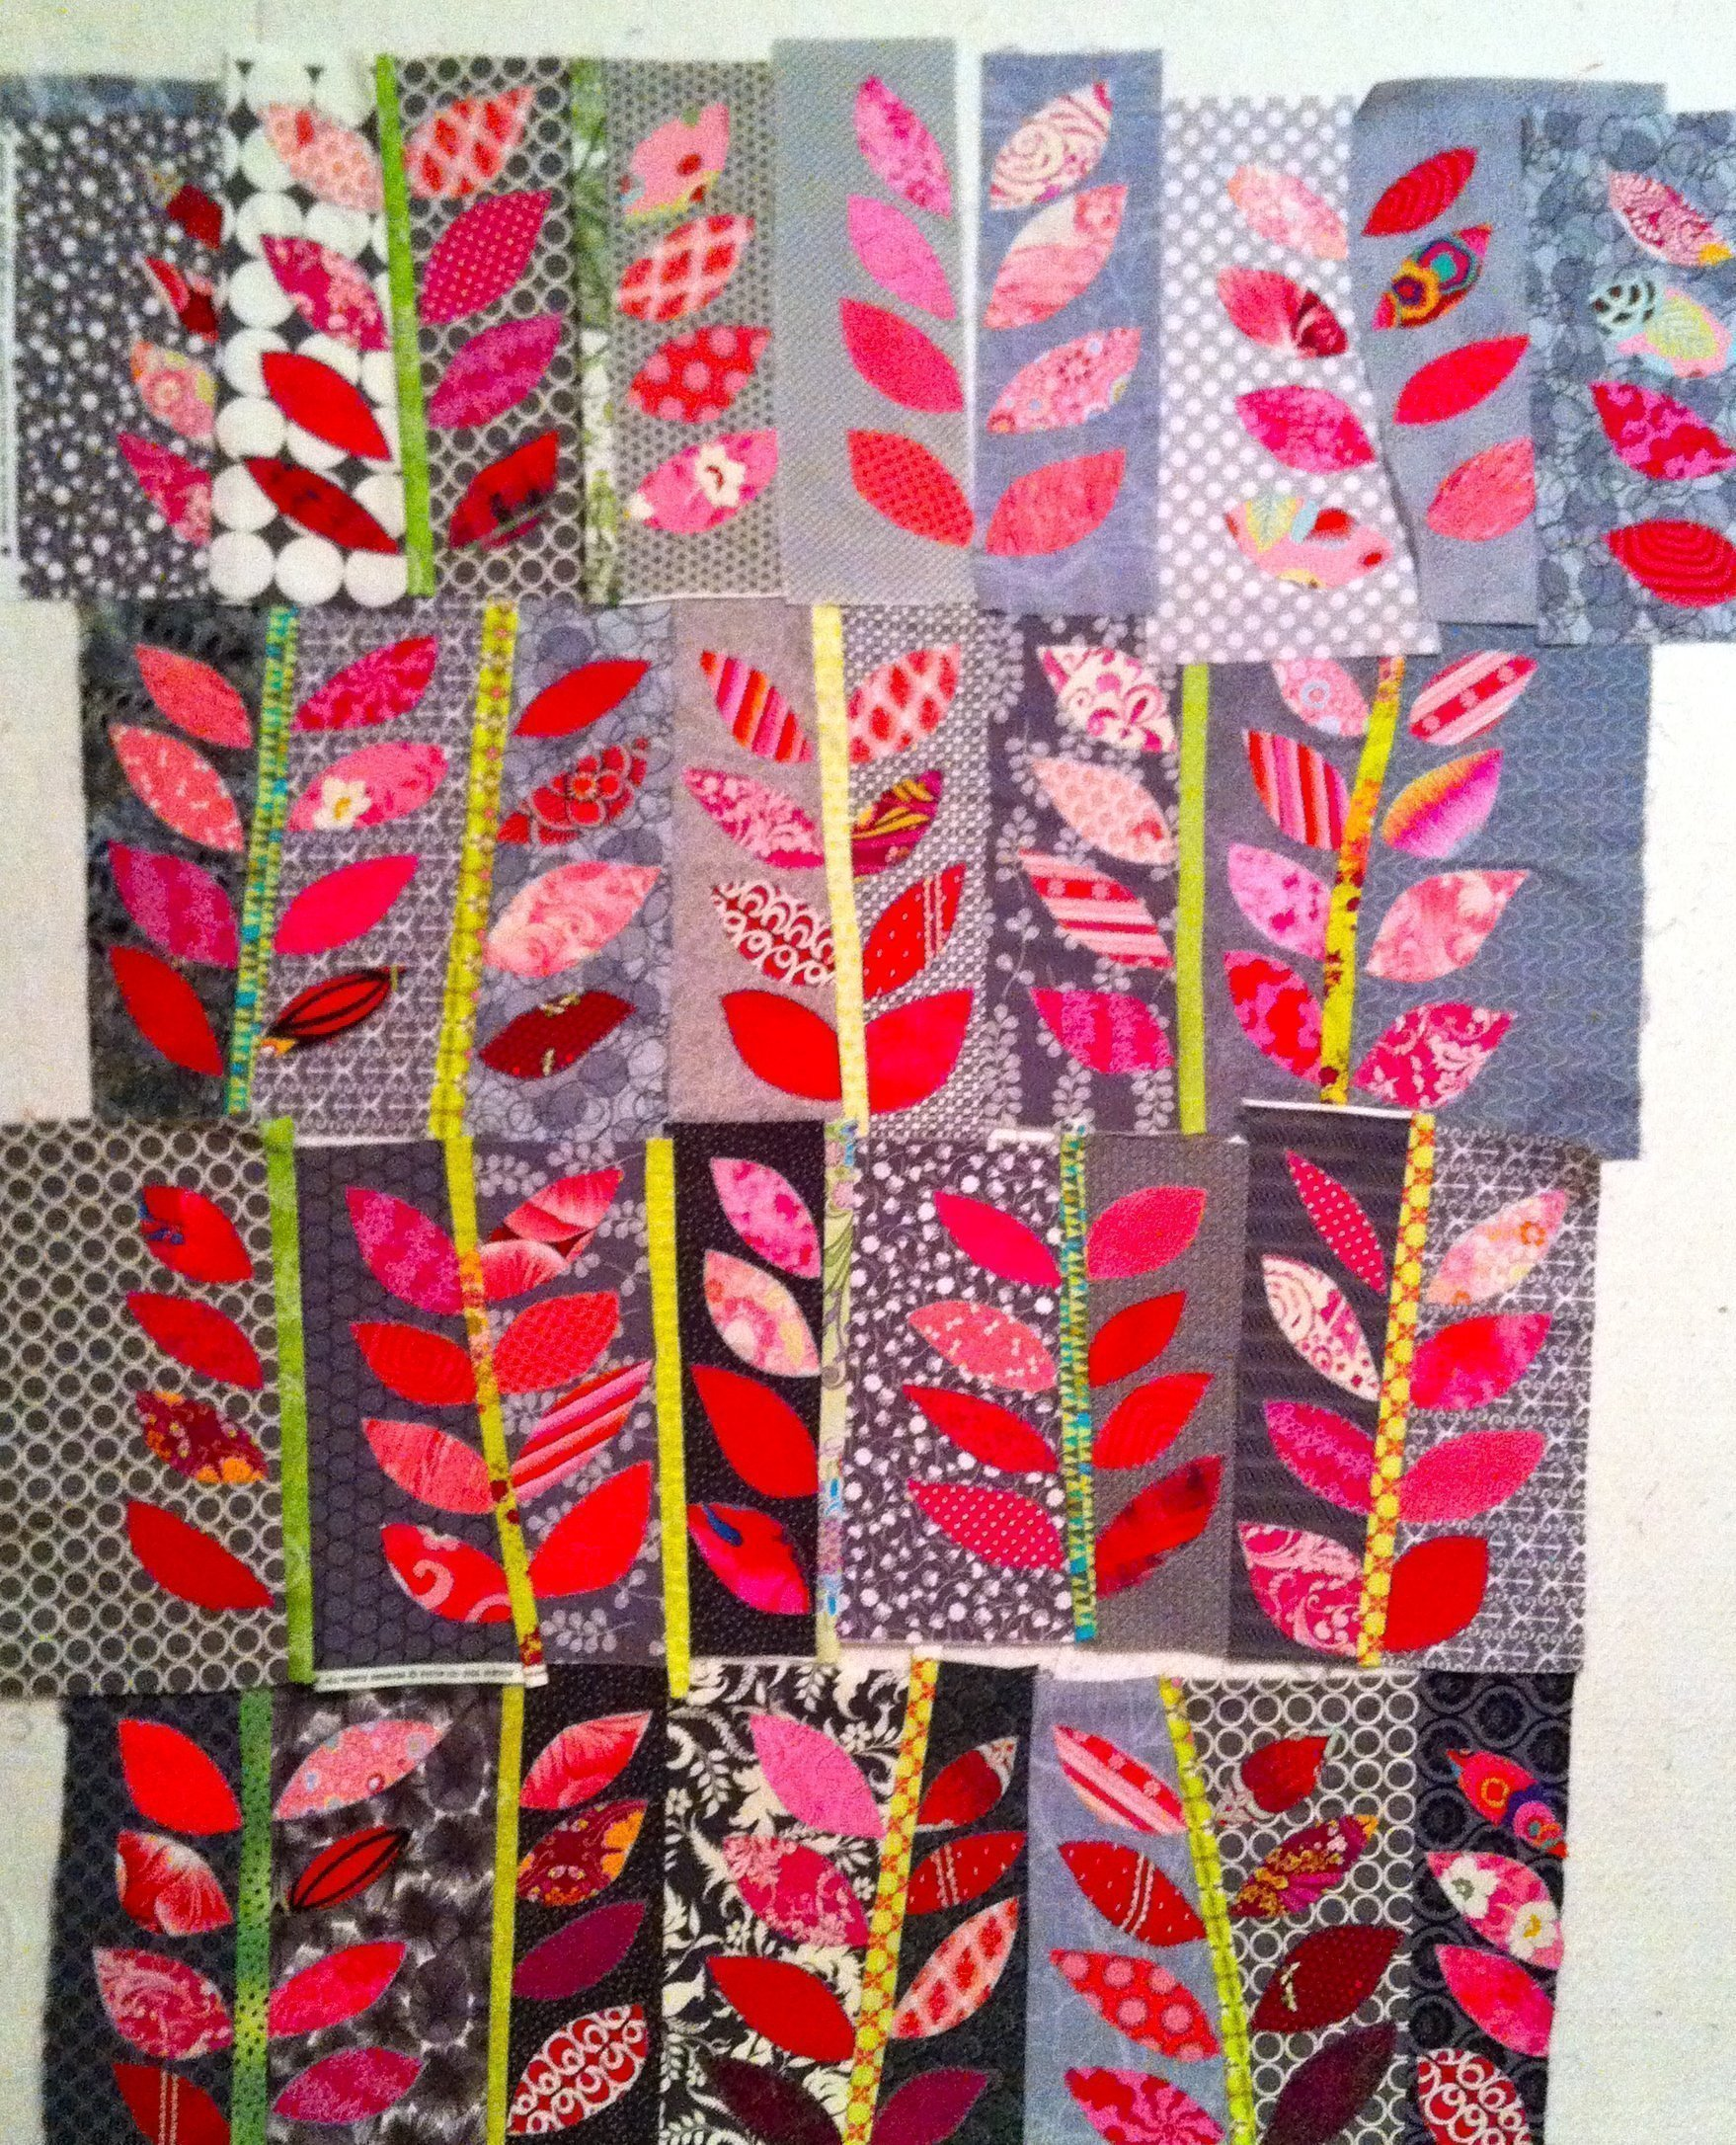 Four rows ready to sew